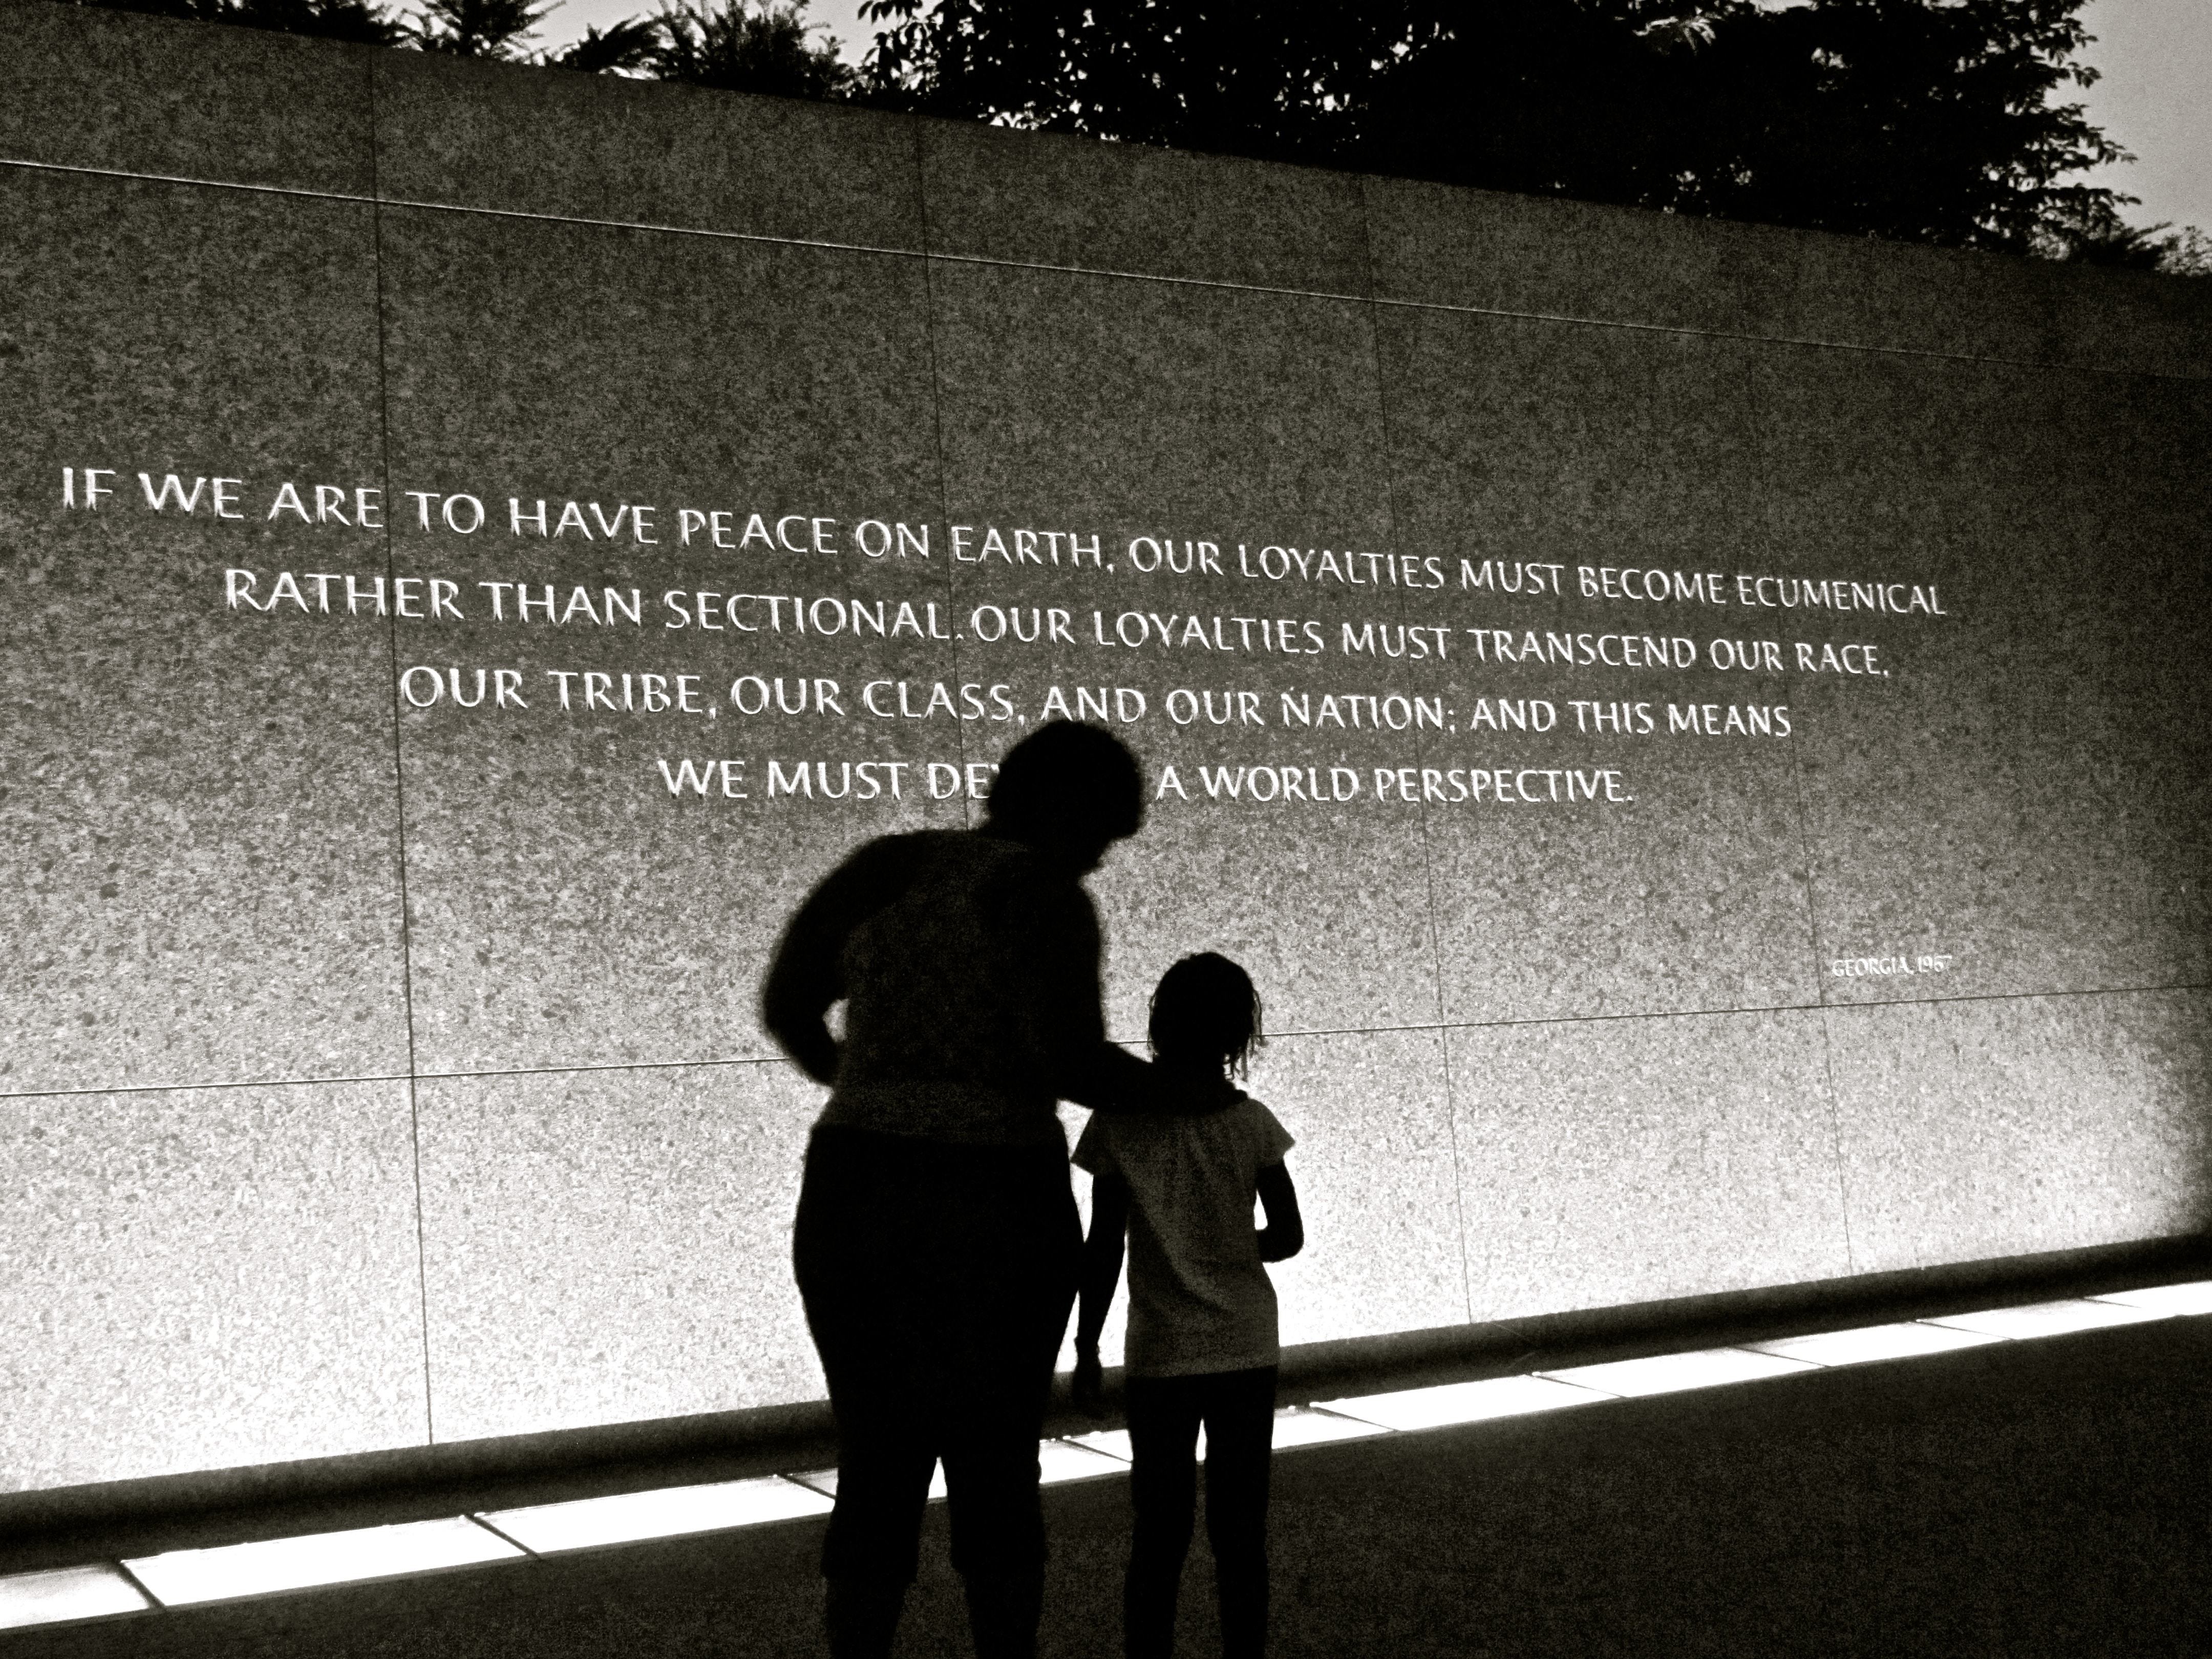 Quote by Martin Luther King Jr. on a wall at the museum in Washington, D.C.